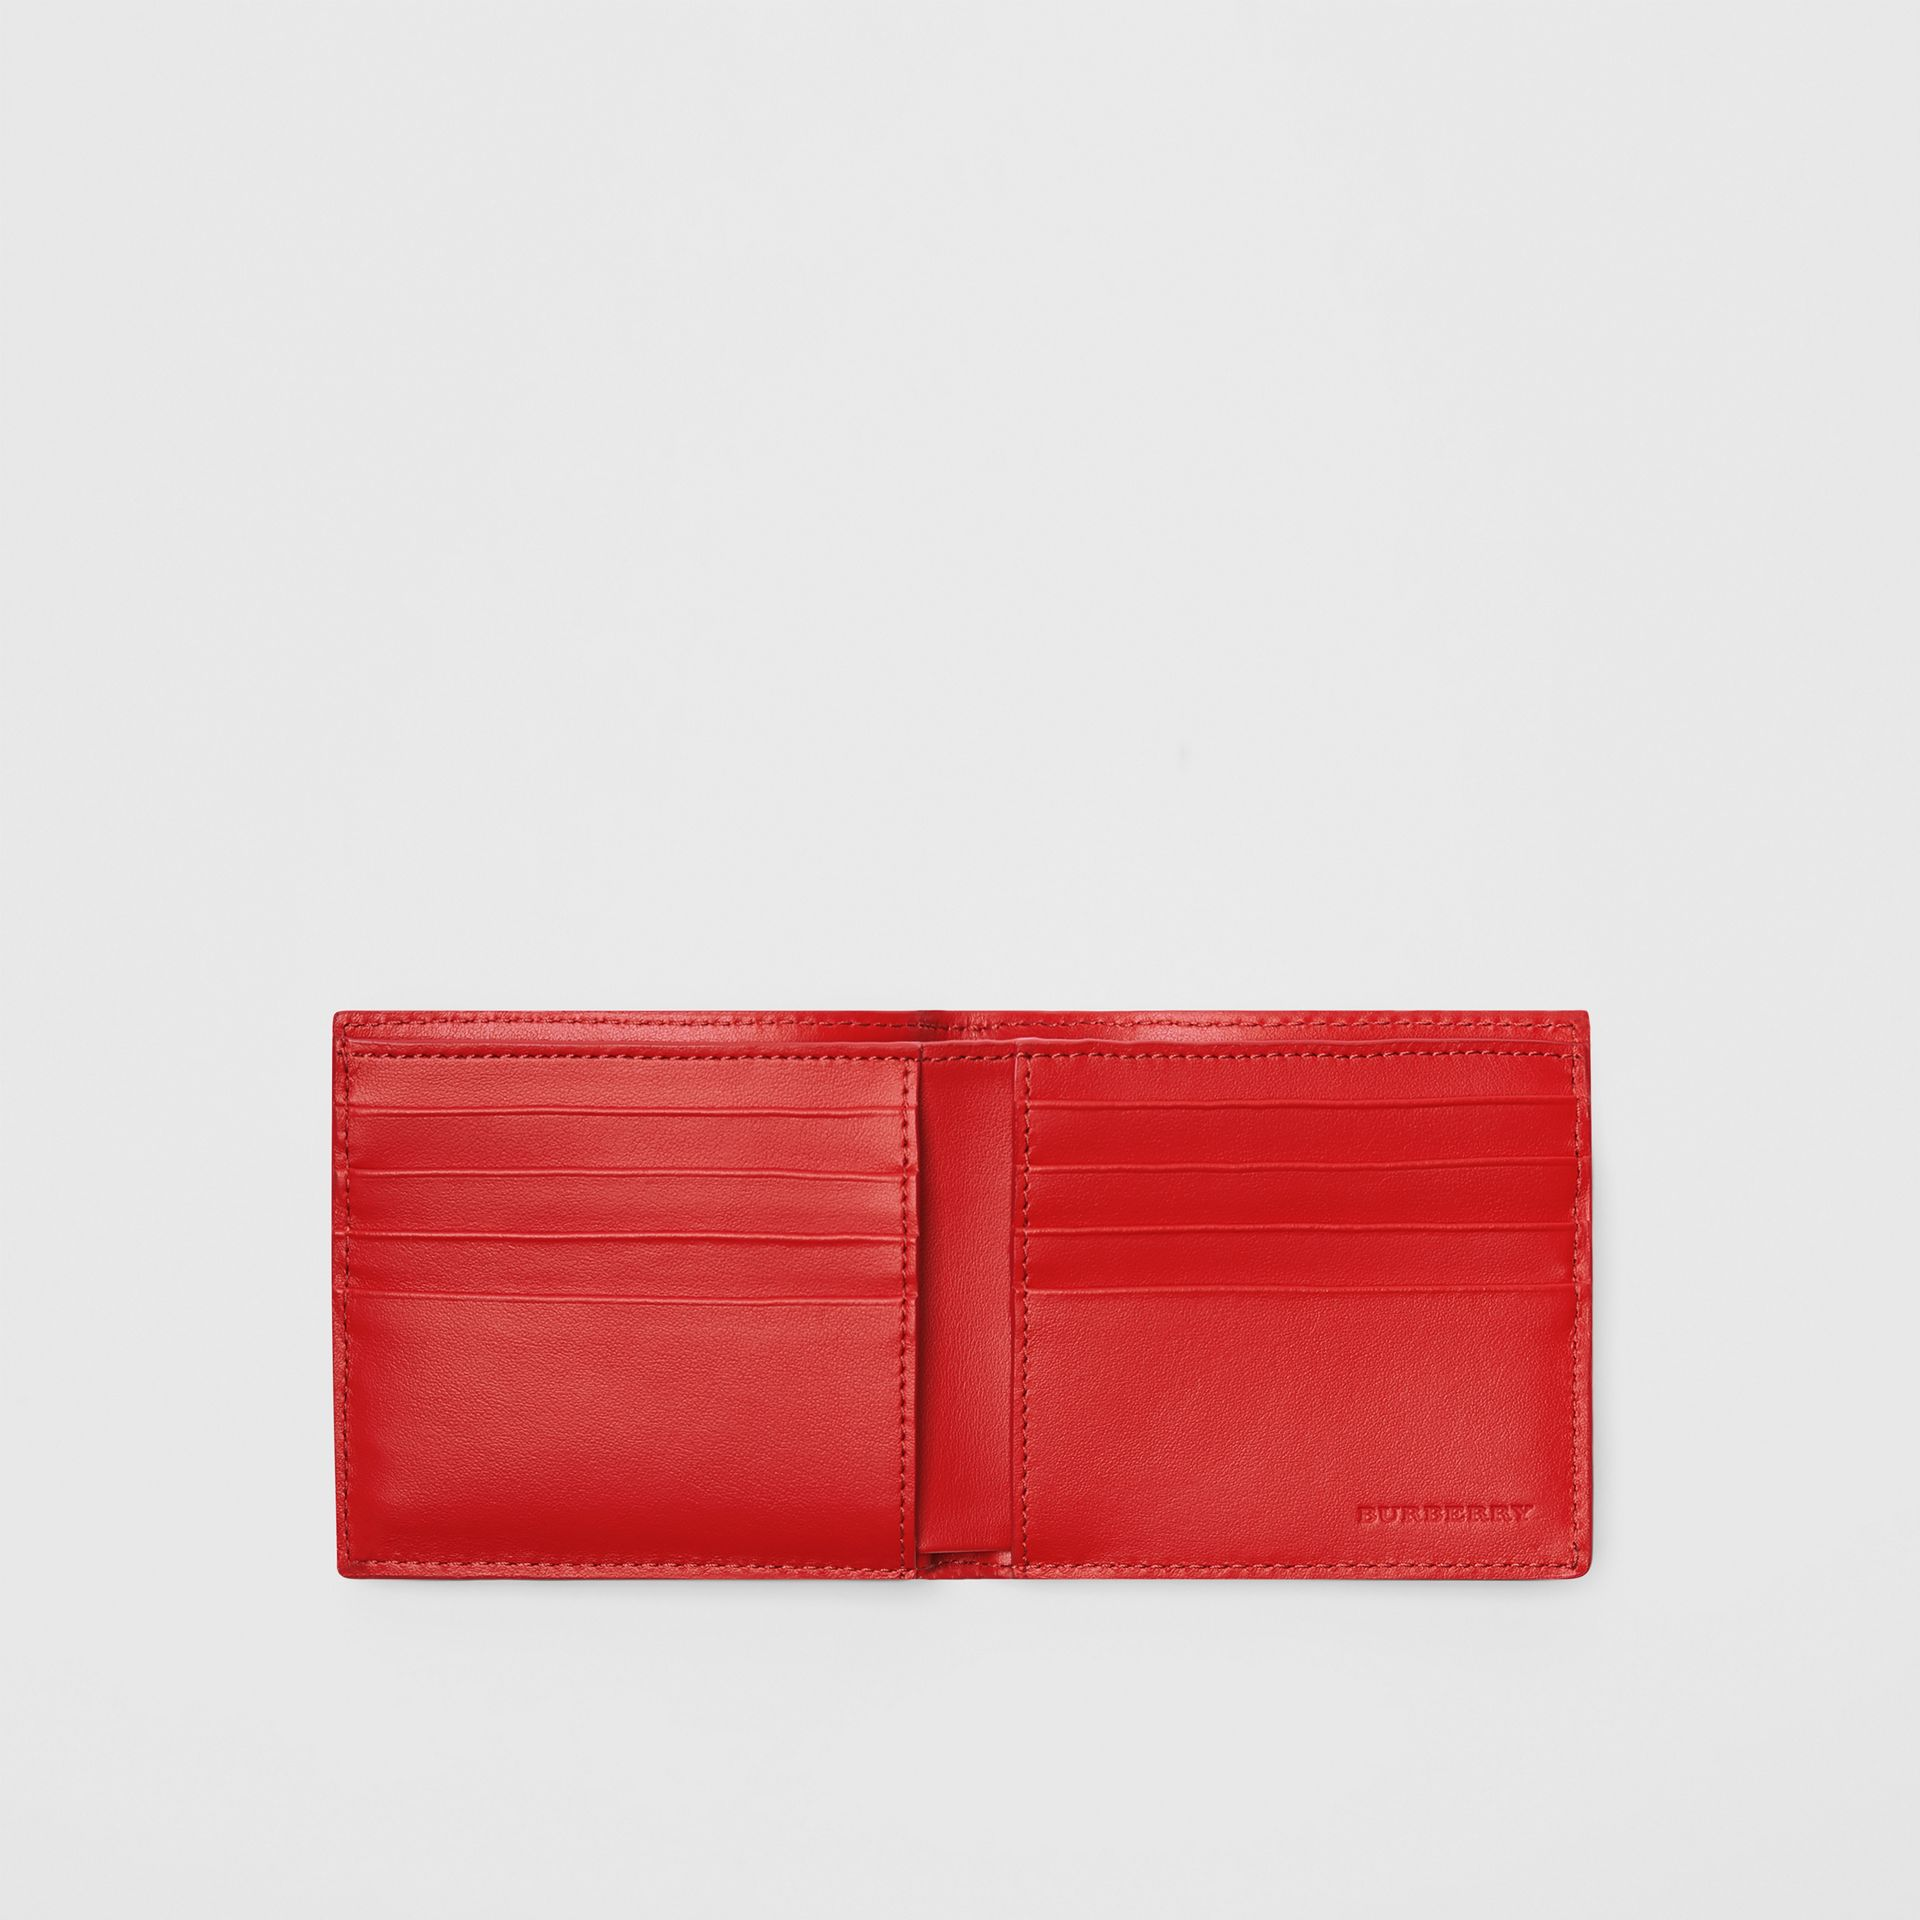 Perforated Check Leather International Bifold Wallet in Rust Red - Men | Burberry - gallery image 2